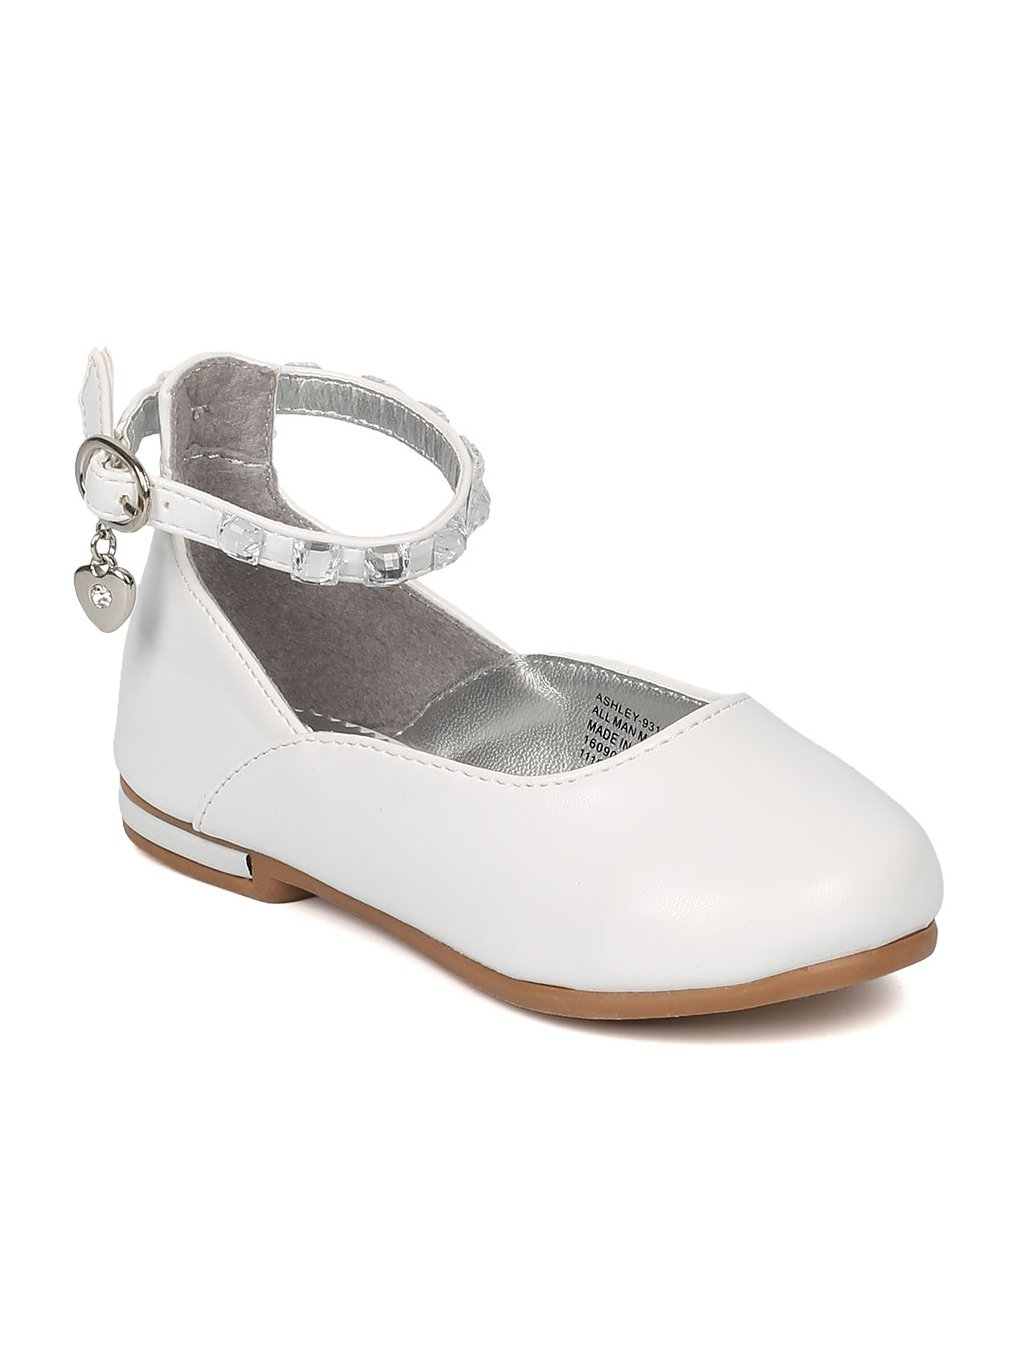 Alrisco Girls Leatherette Rhinestone Ankle Strap Charmed Ballet Flat HB60 - White Leatherette (Size: Toddler 7)